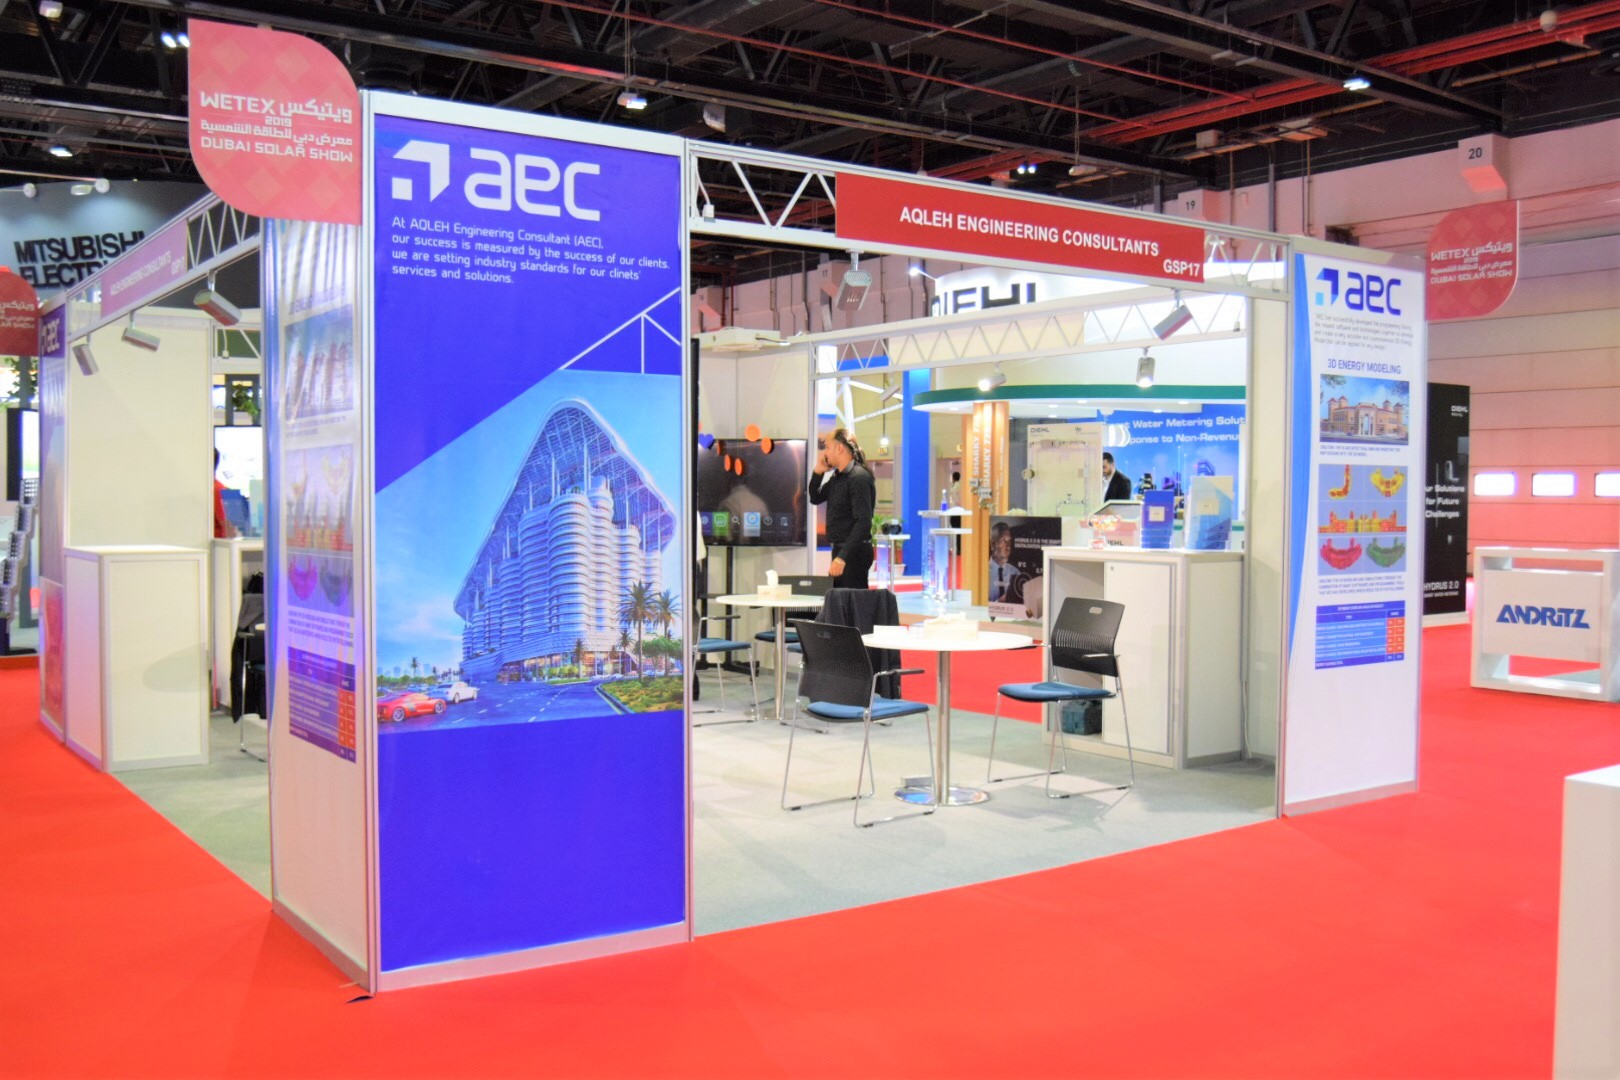 Participation In WETEX